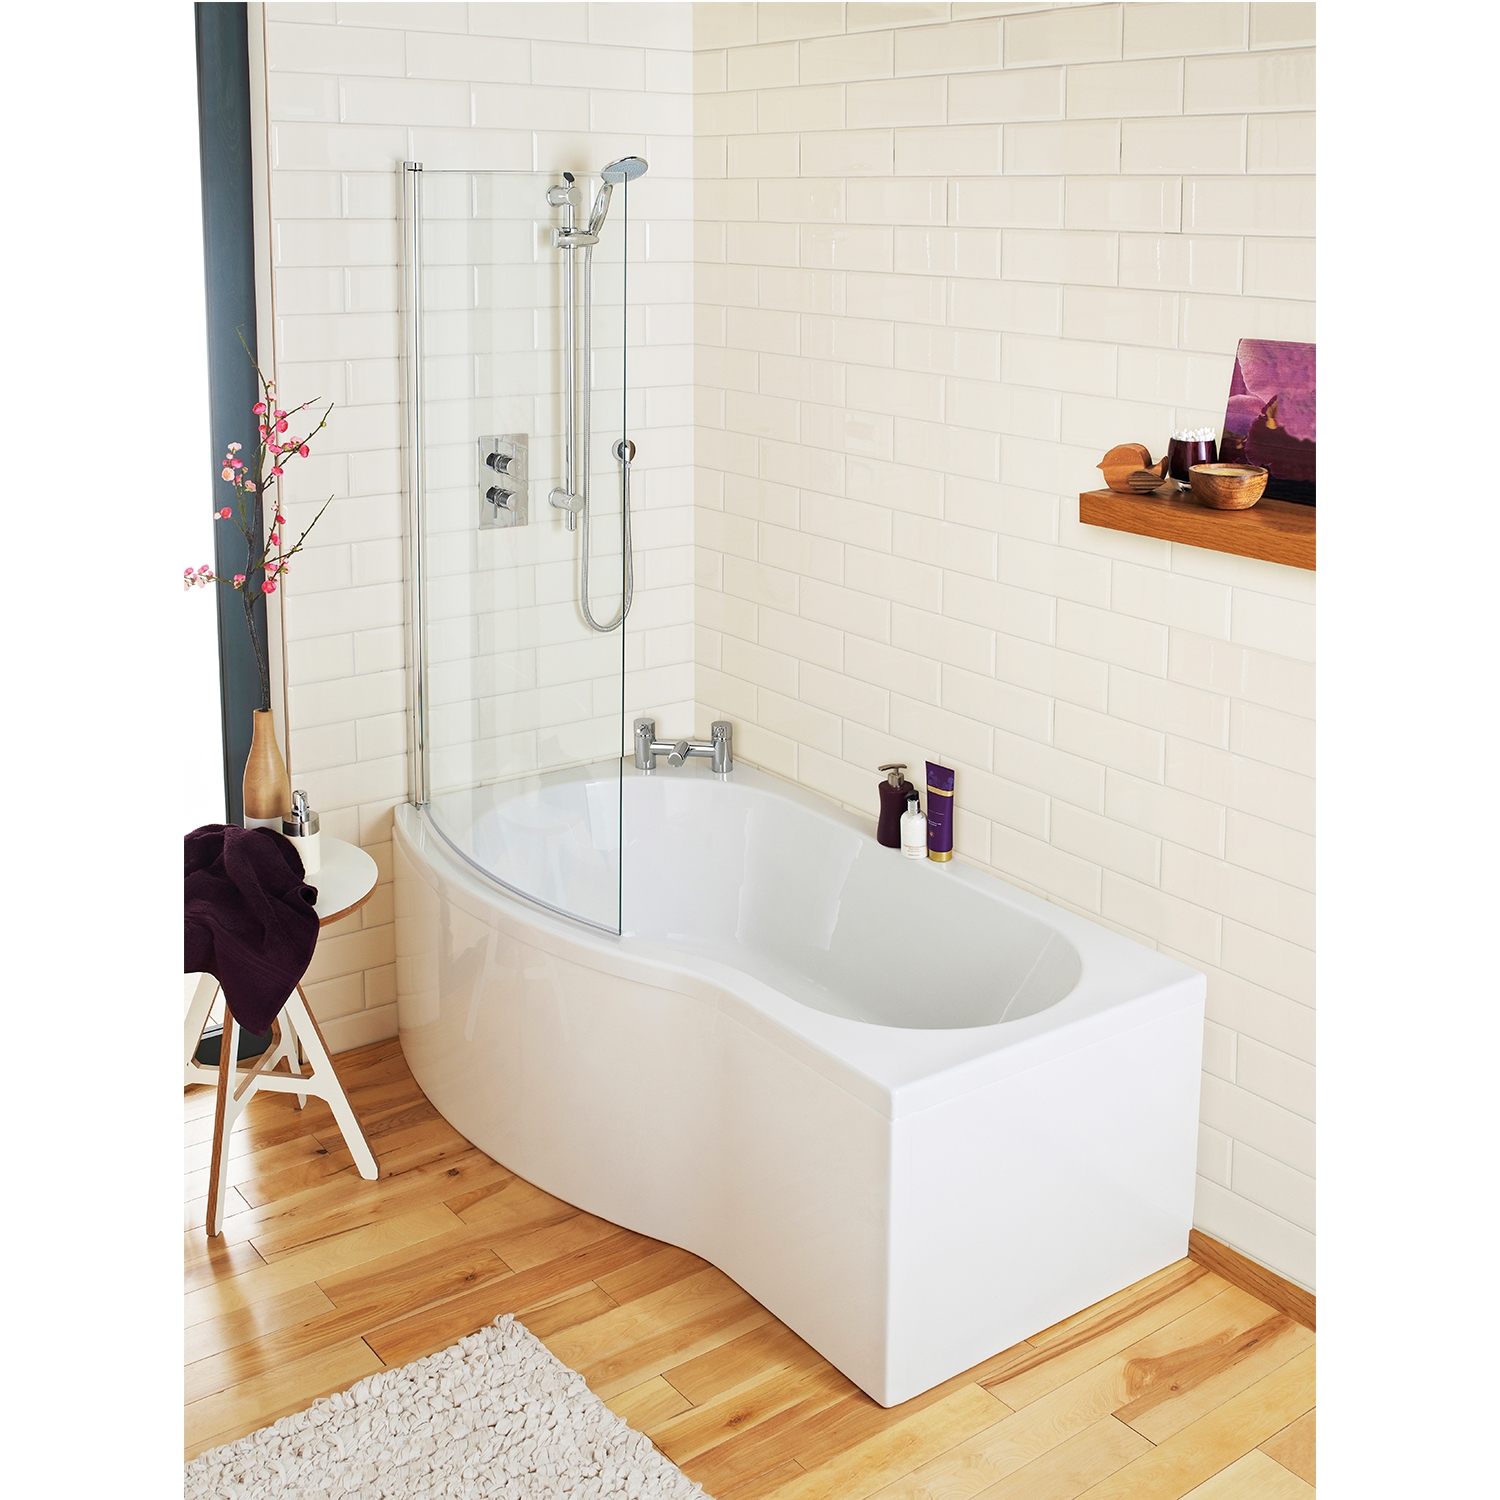 Premier B-Shaped Curved Shower Bath 1500mm x 735mm/800mm Left Handed-0